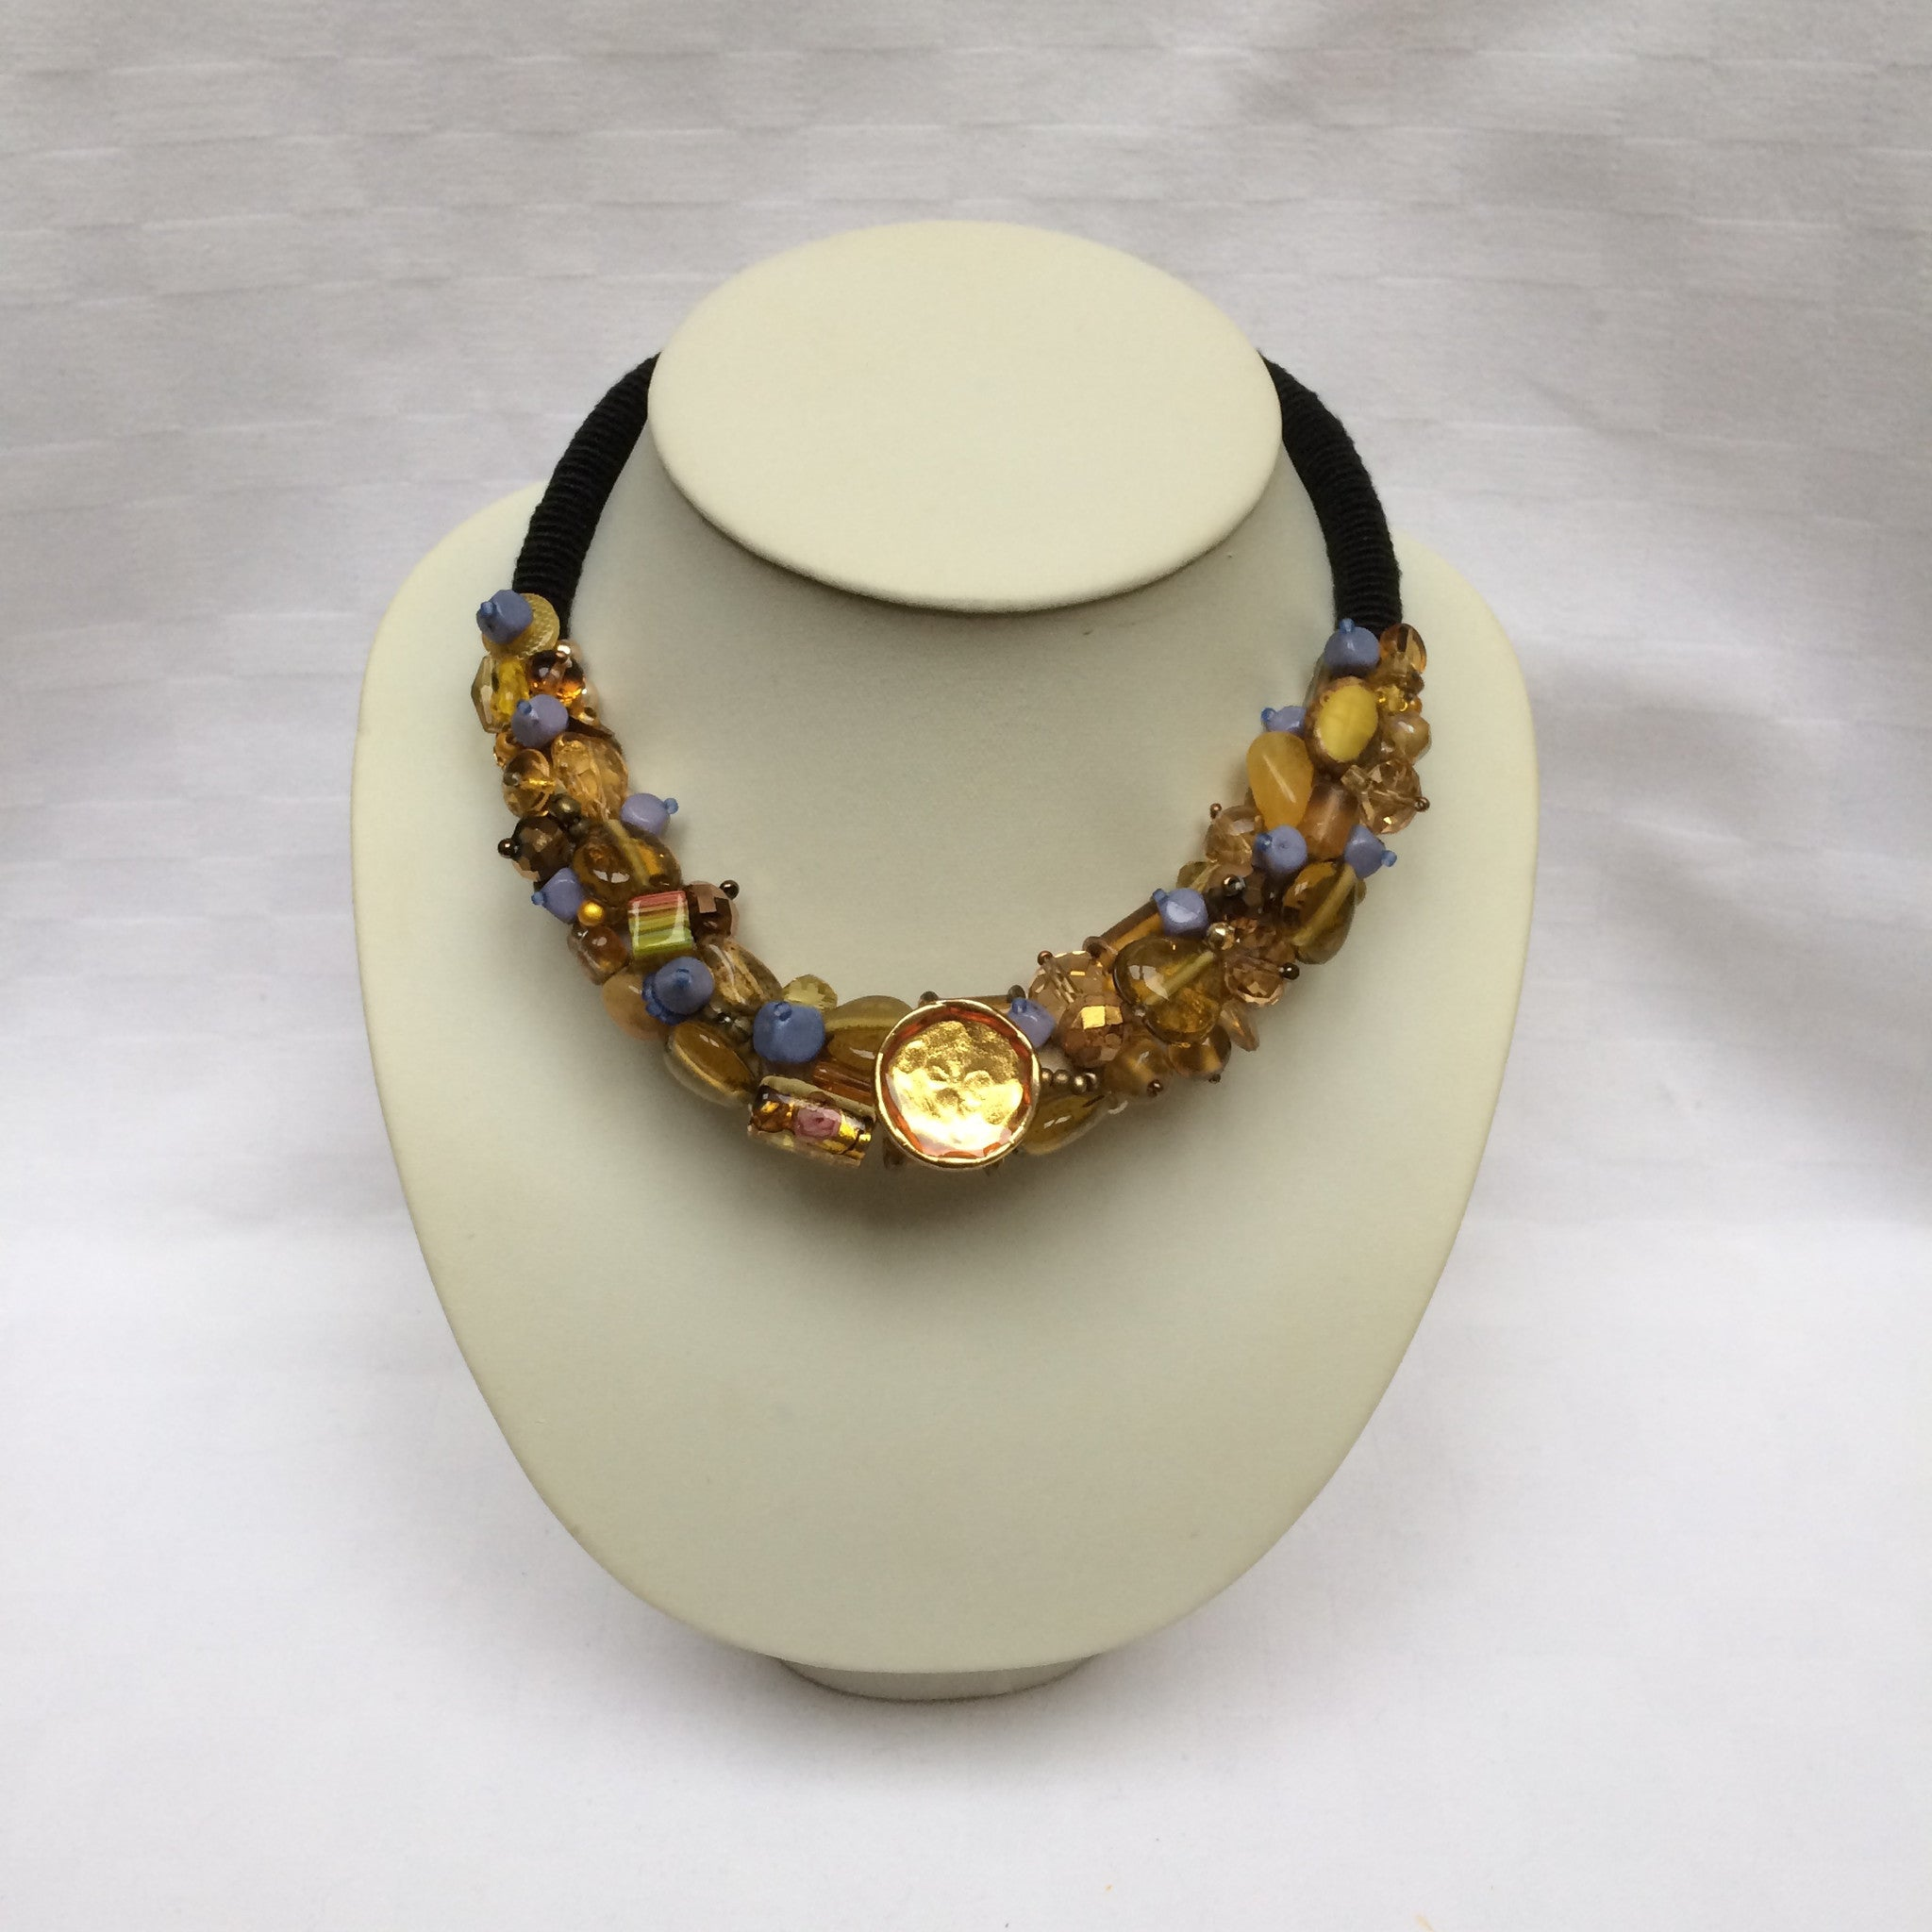 Bronze with Grey Collar necklace